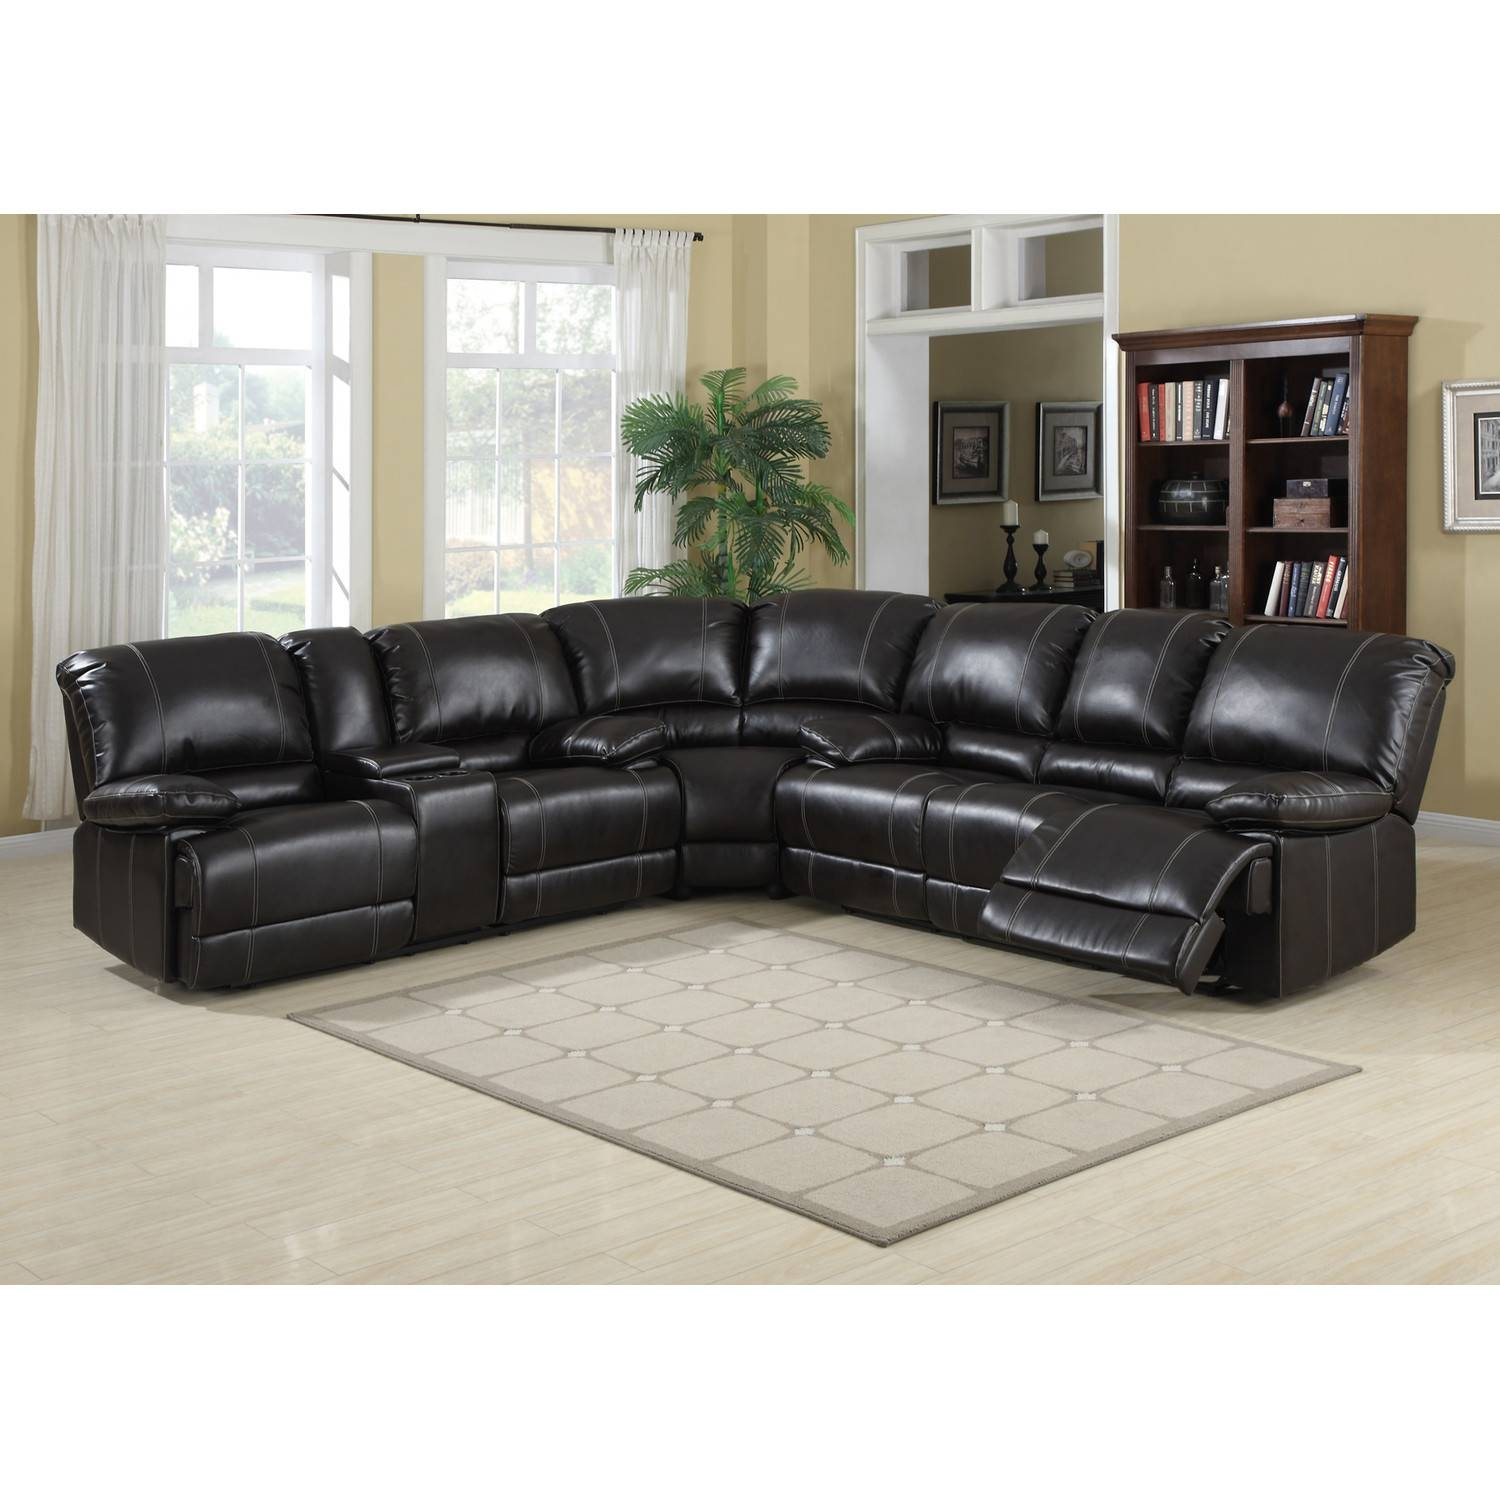 Furniture: Beautiful Sectional Sofas Cheap For Living Room in Black Sectional Sofa For Cheap (Image 6 of 30)